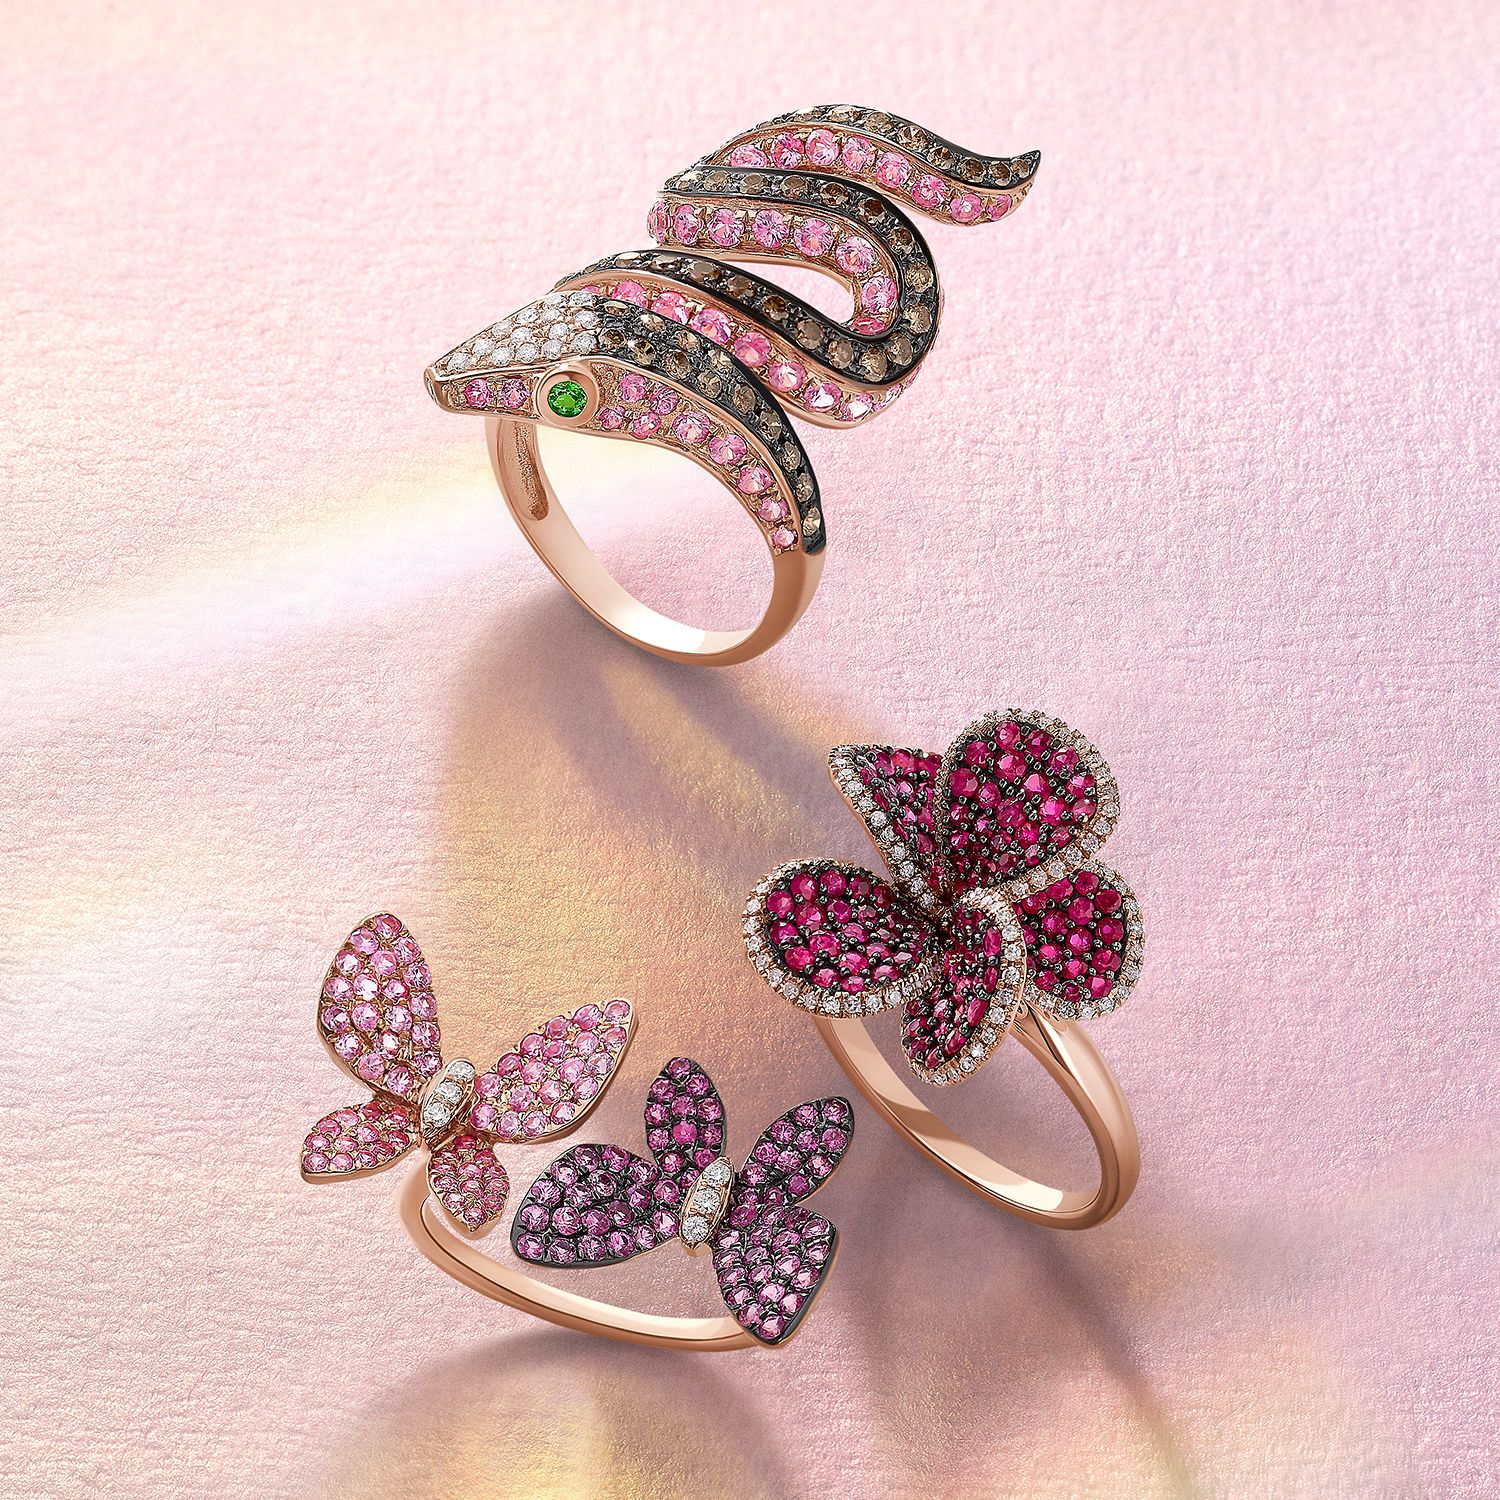 Call of the wild. Precious pink gems and diamonds from the Nature ...